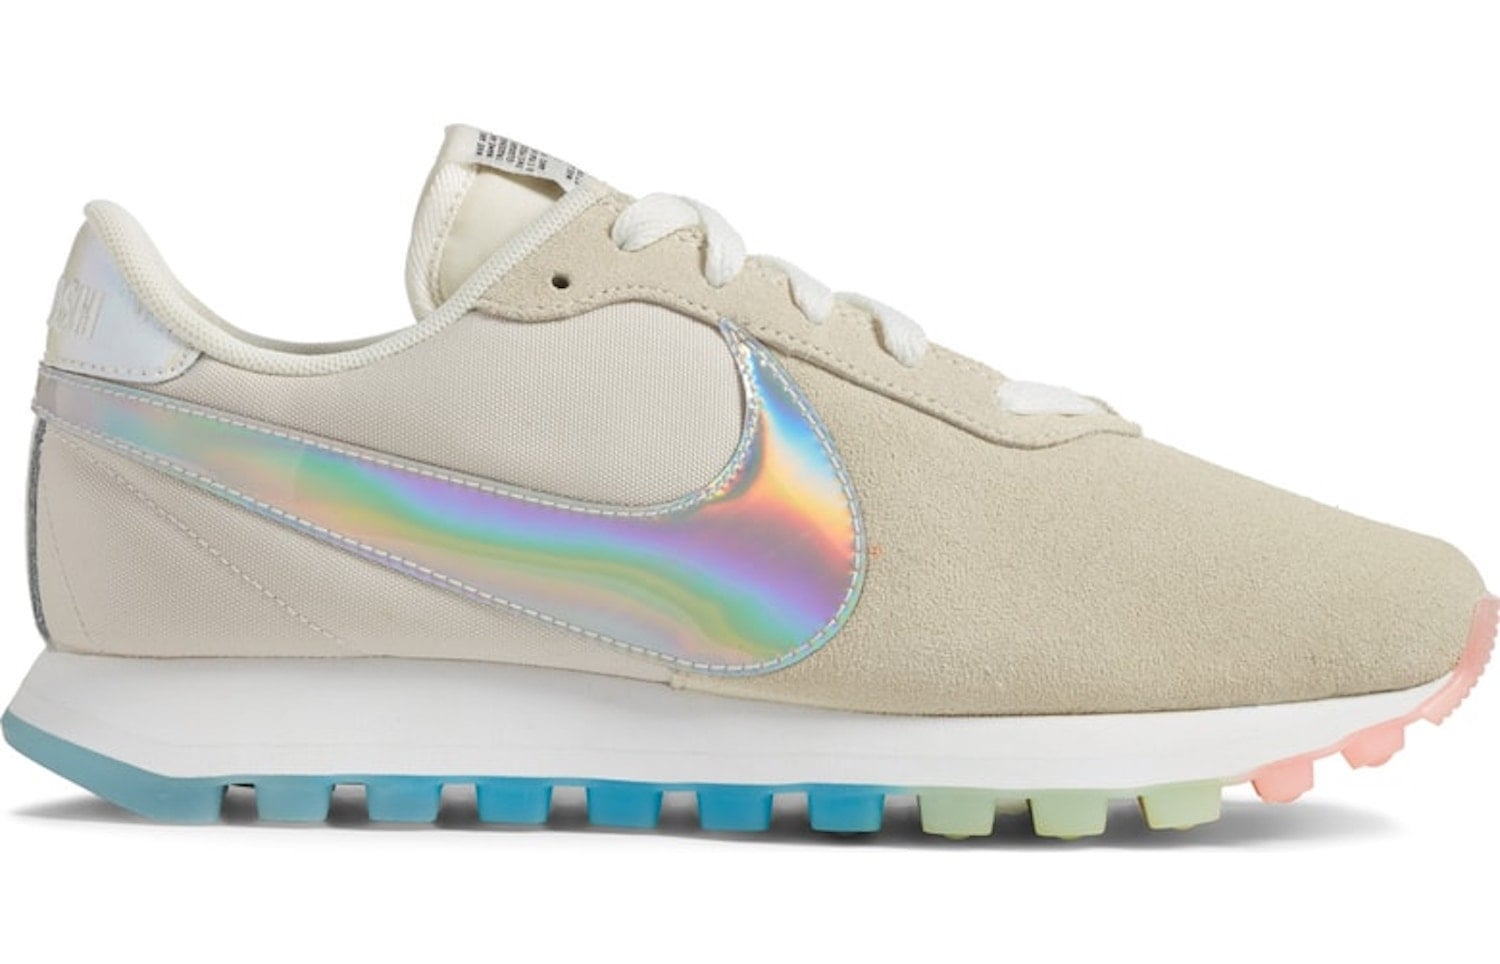 competitive price c6c89 a4d83 Iridescent Nike Sneakers 2018